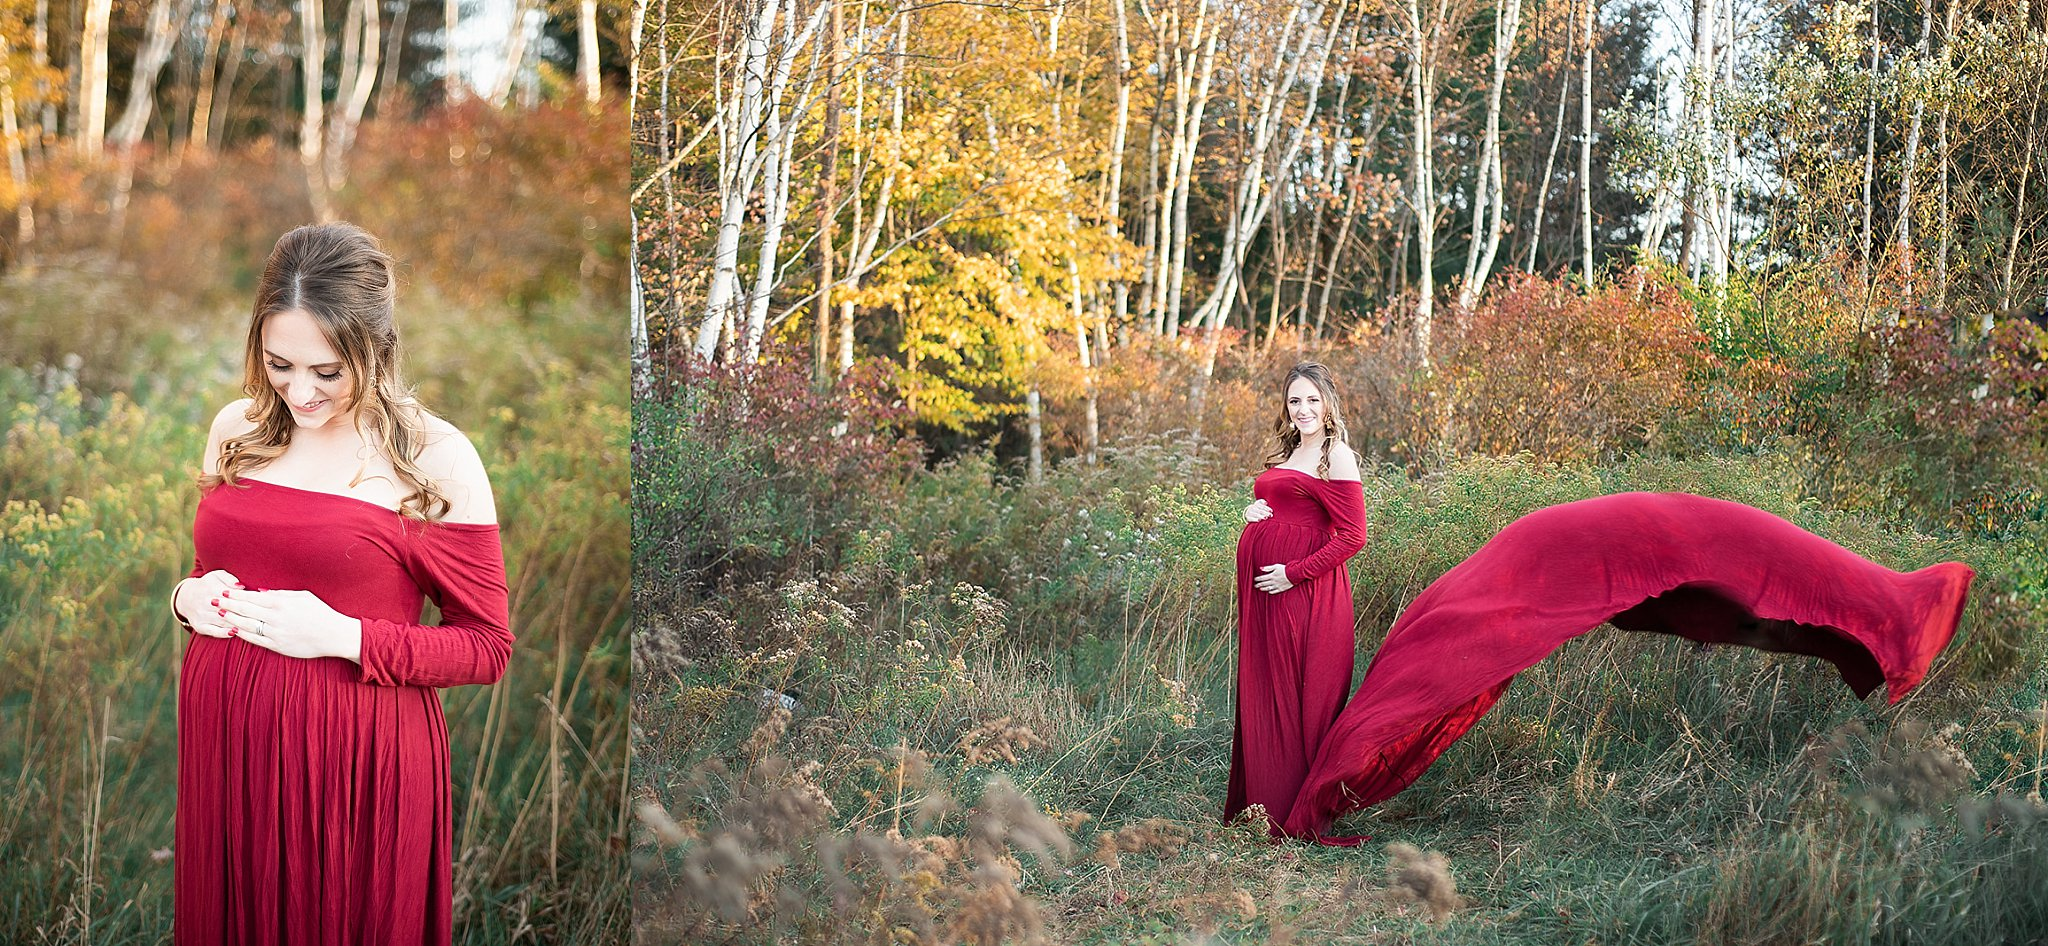 milestone photography maternity session designer gowns